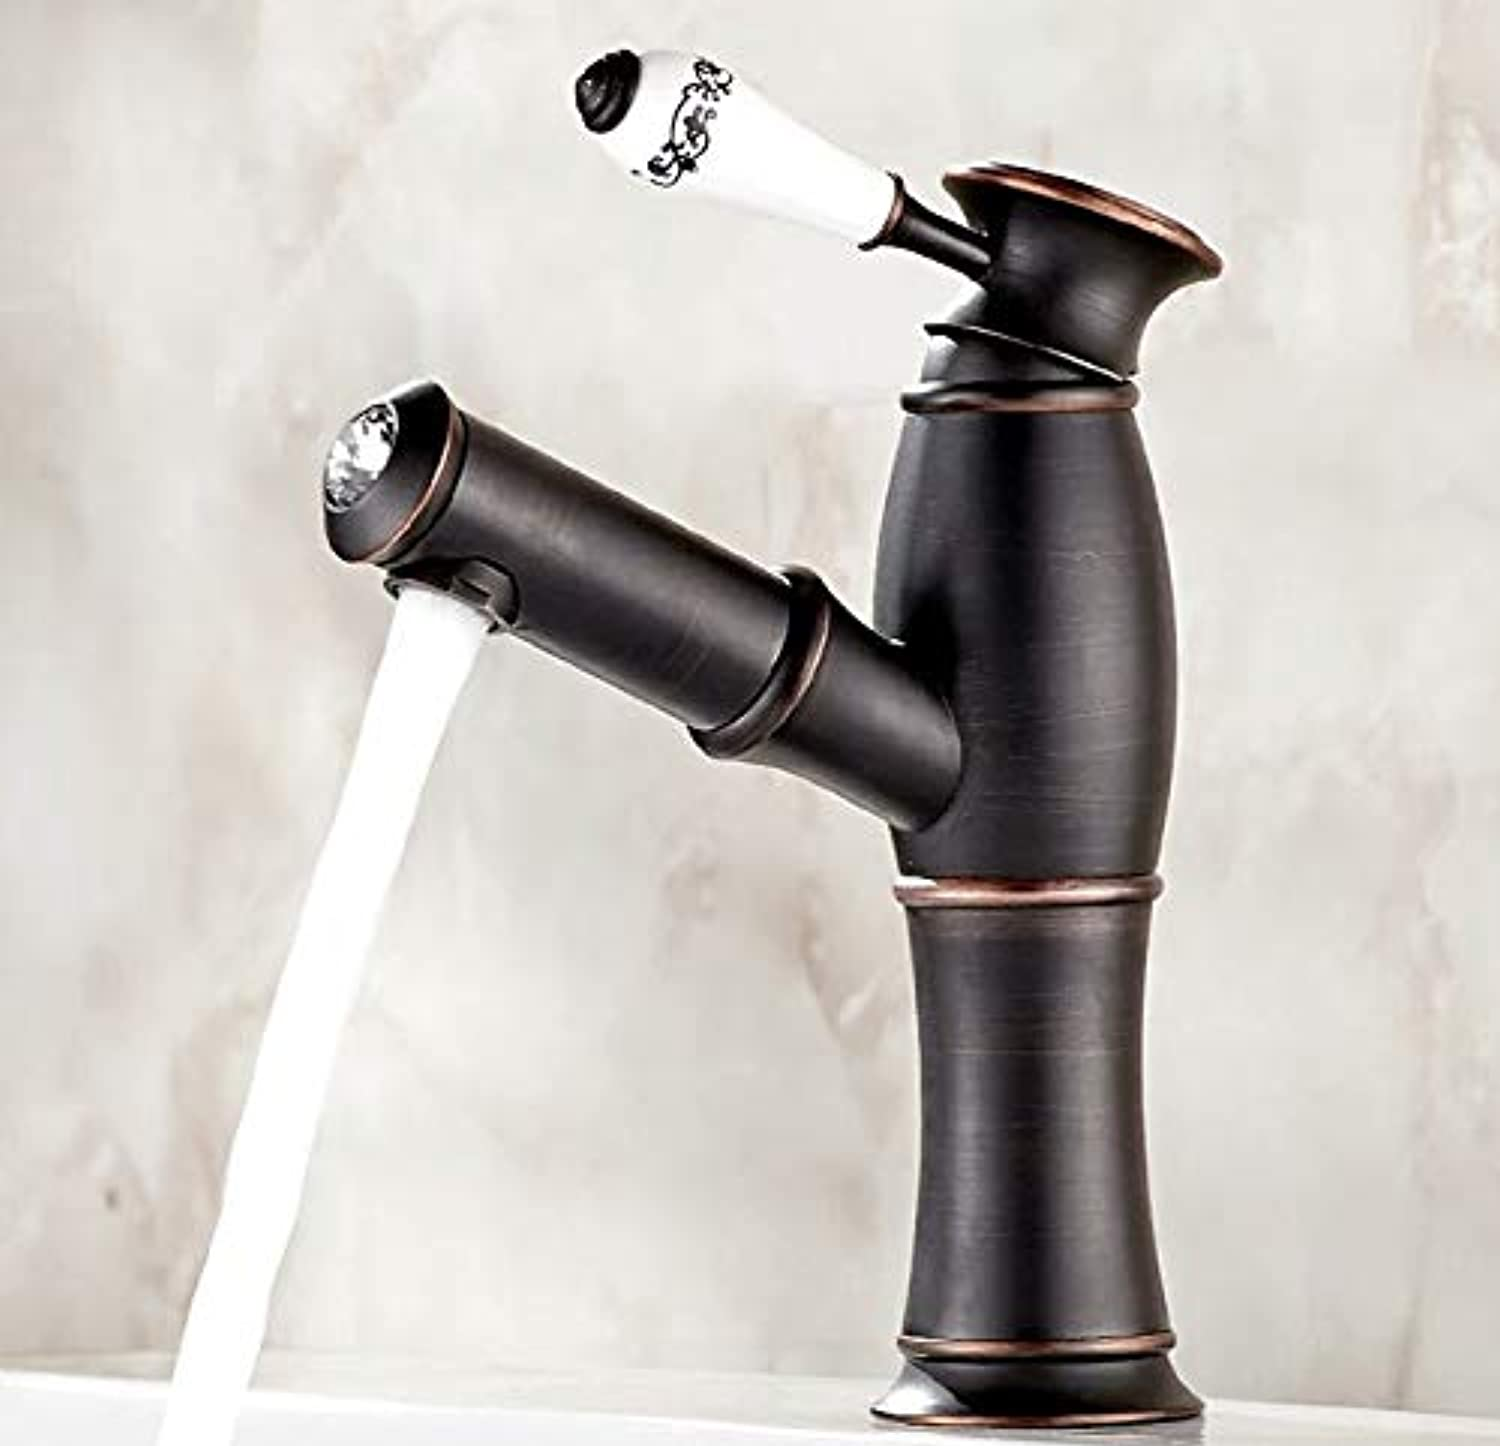 redOOY Bathroom Sink Taps European Basin Faucet Hotel Bathroom Antique Pull Cold And Hot Water Faucet Wash Basin Faucet